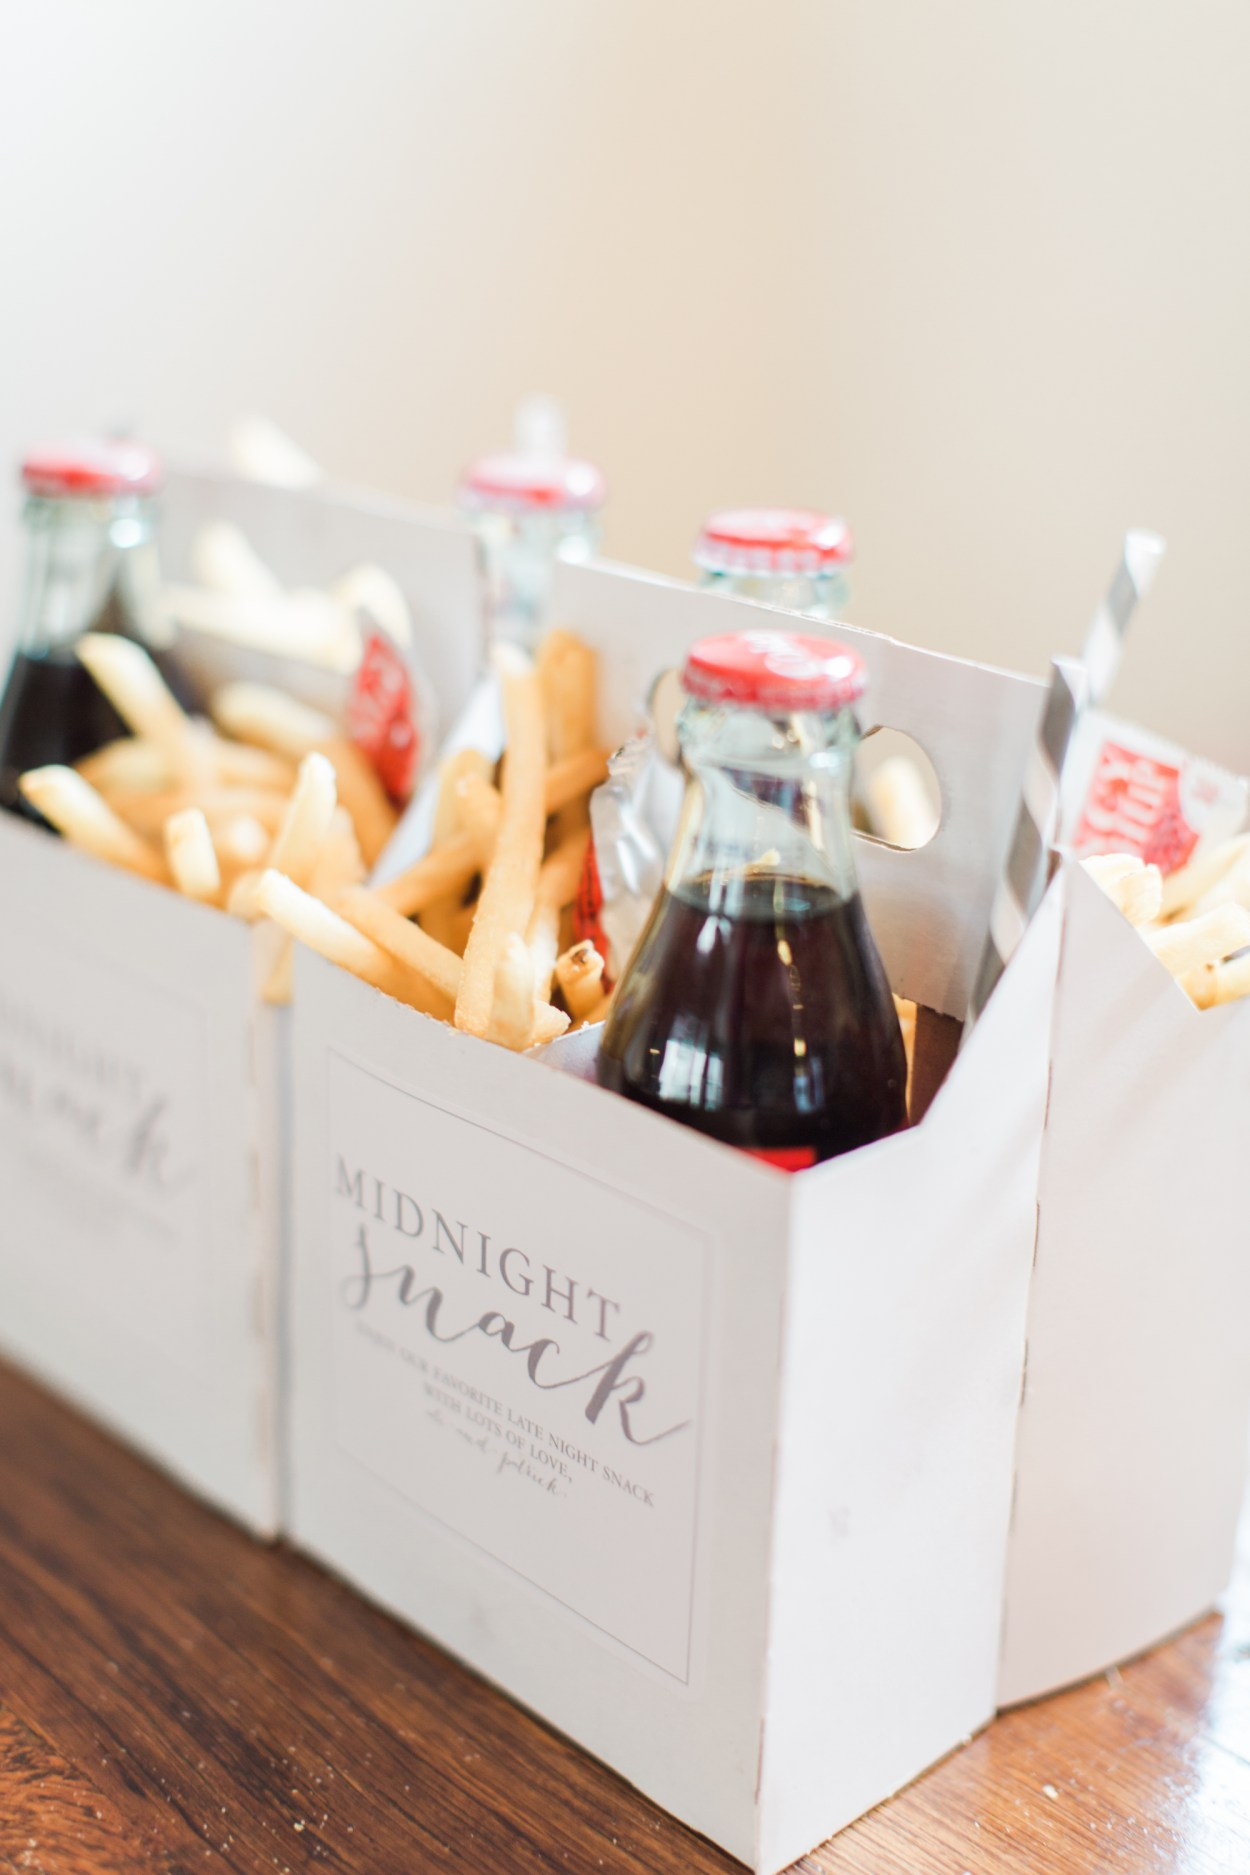 10 Adorable DIY Wedding Favors That Your Guests Won't Hate| Wedding Favors, Wedding Favors Ideas, DIY Wedding Favors, Easy Wedding Favors, DIY Wedding, DIY Wedding Favors for Guests